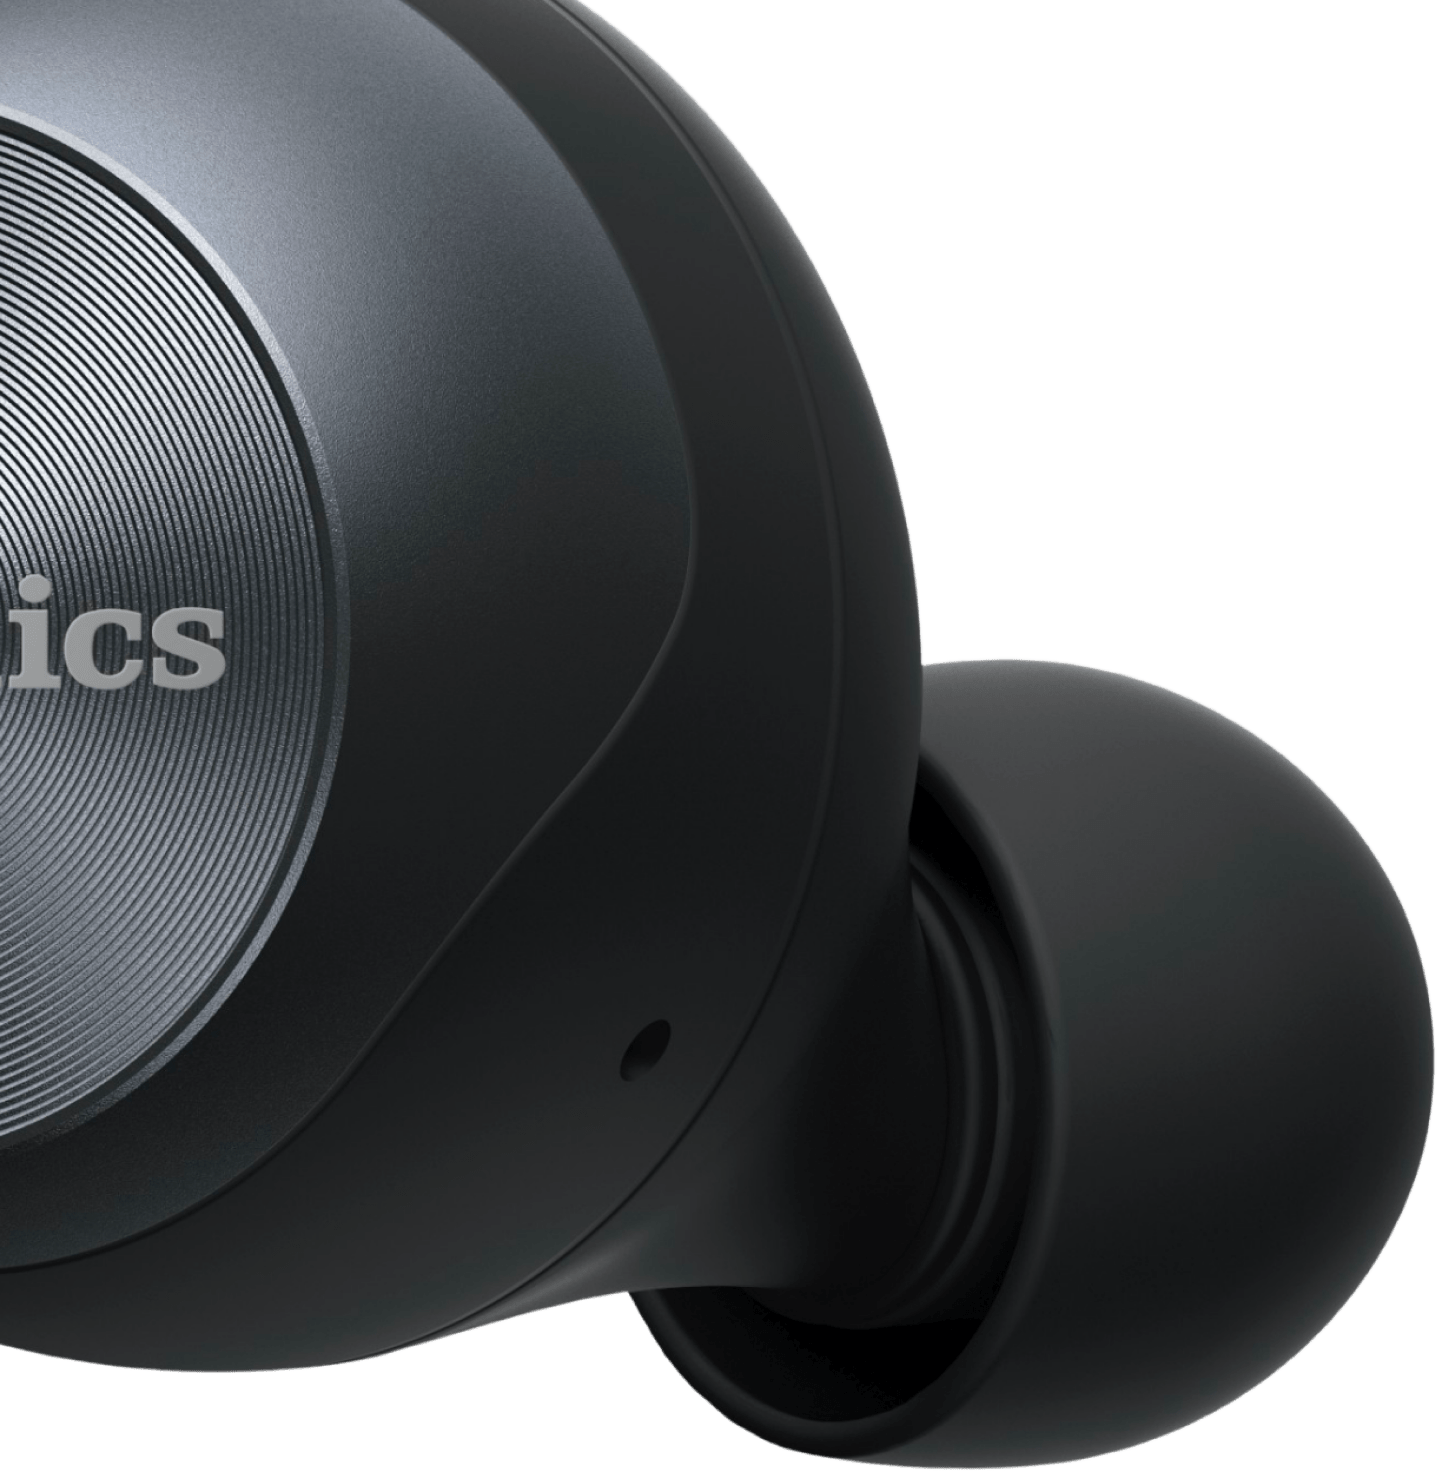 Technics True Wireless Earbuds